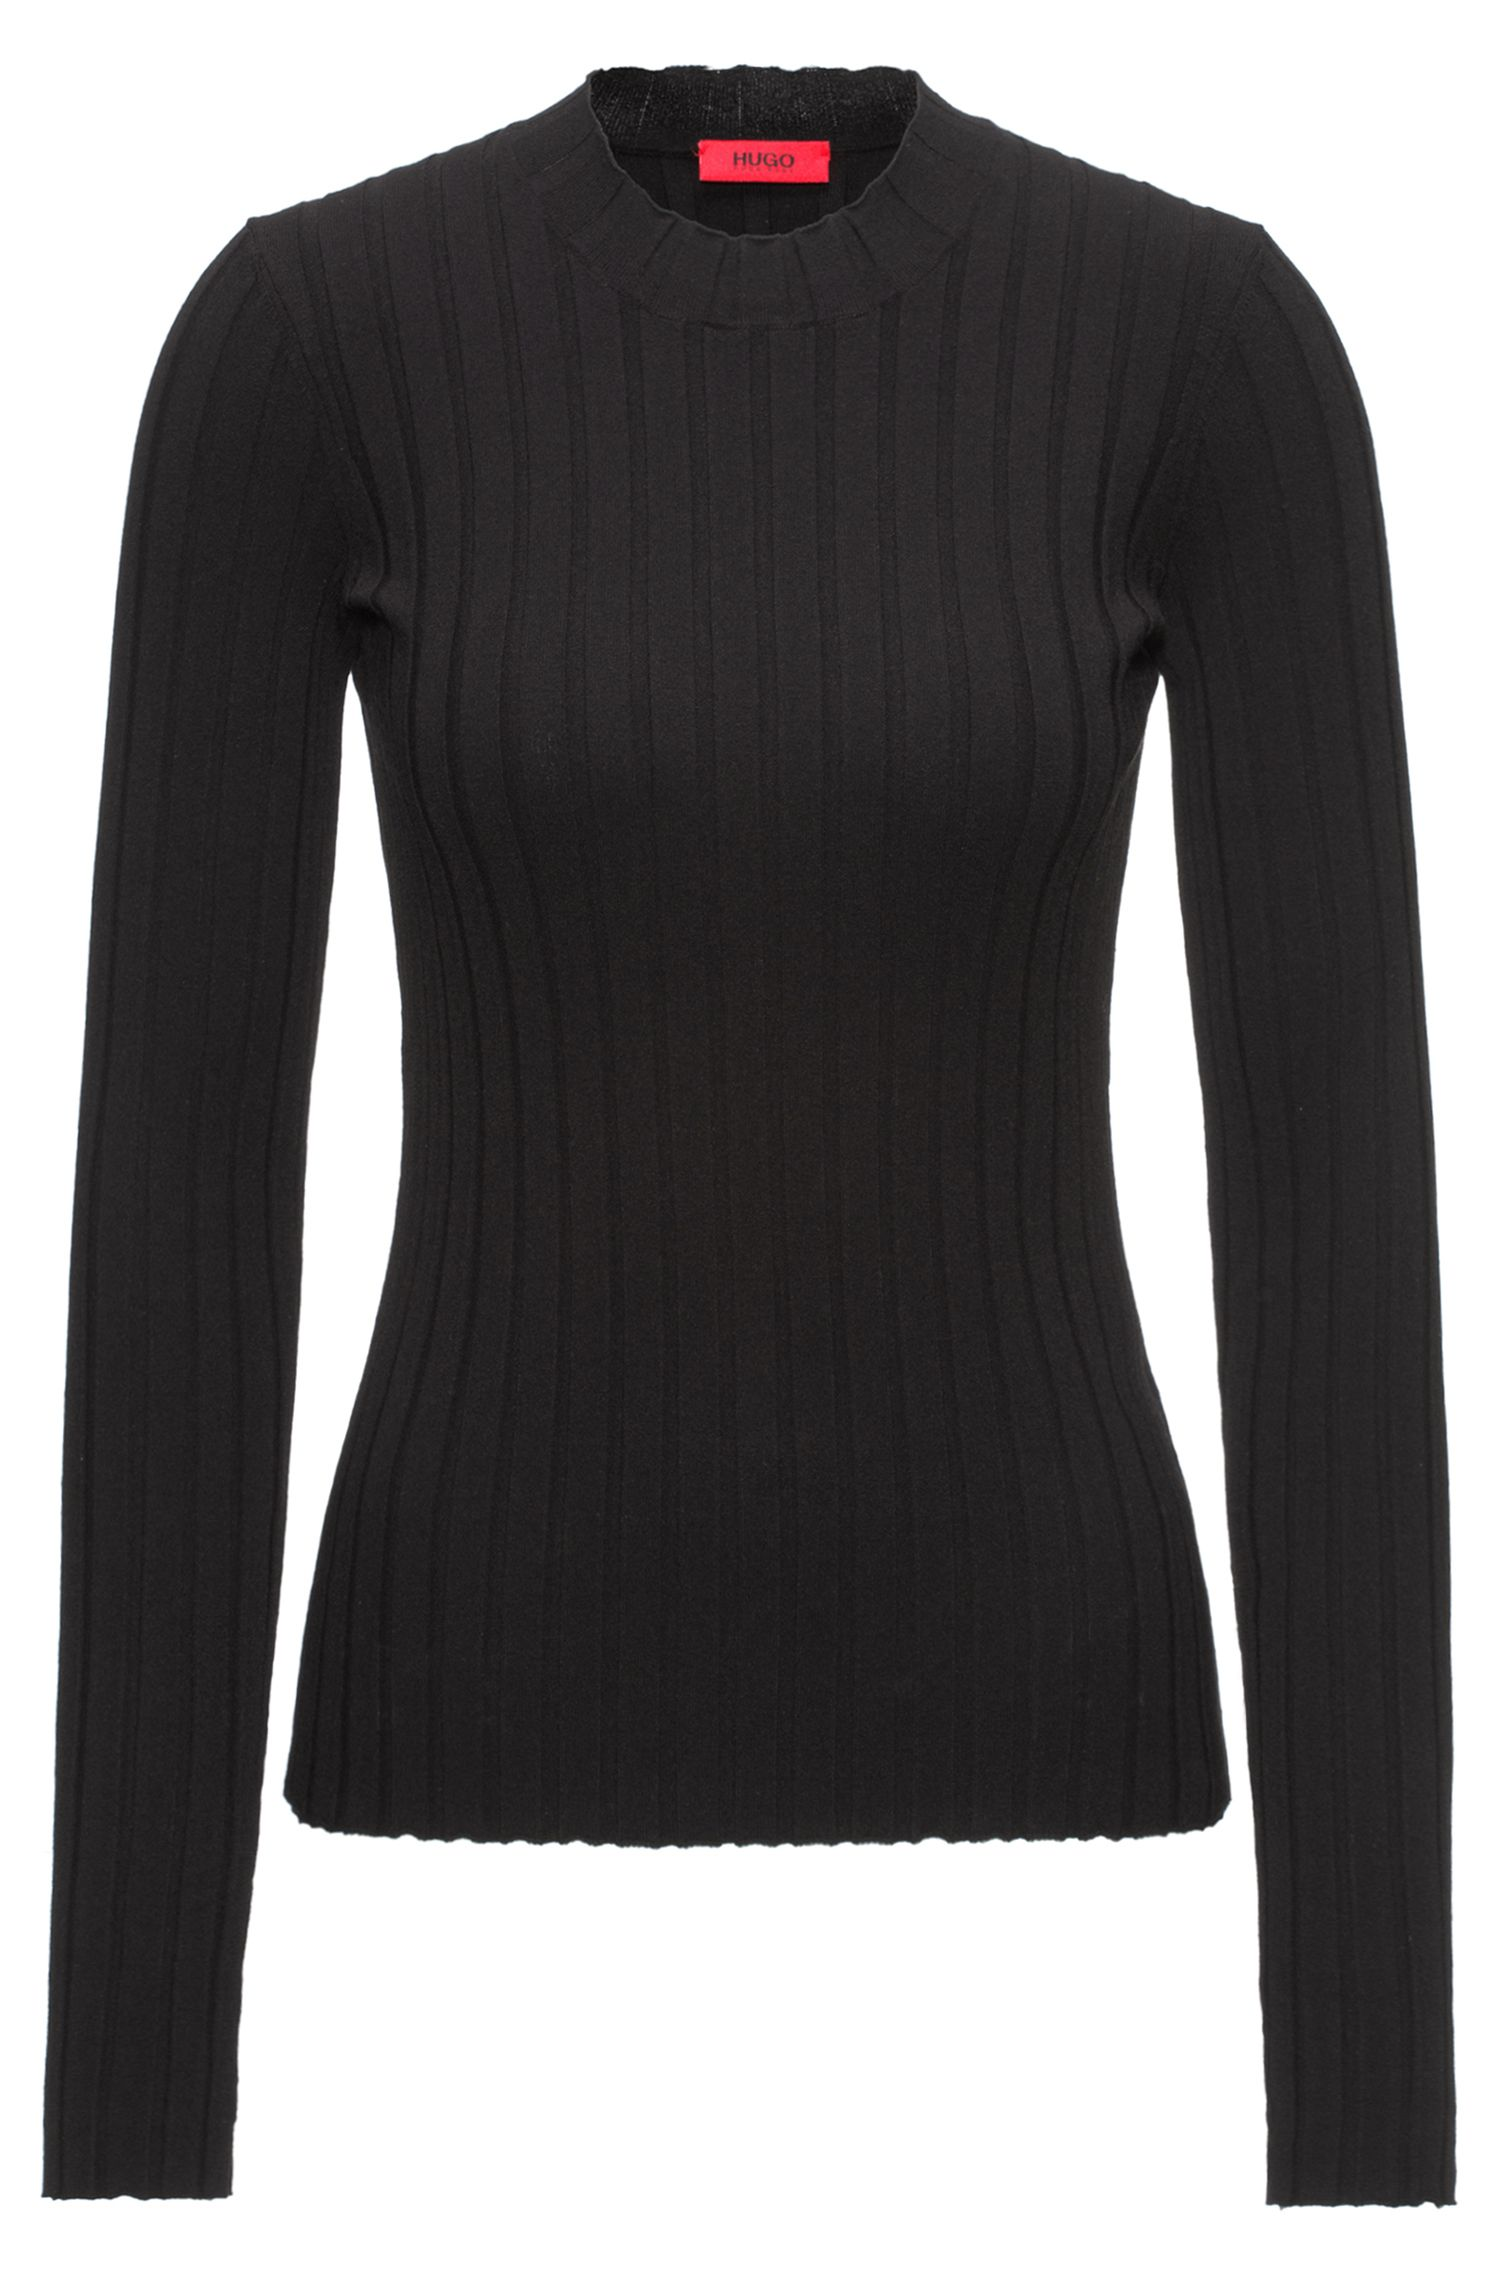 Wide-ribbed sweater with a high neckline